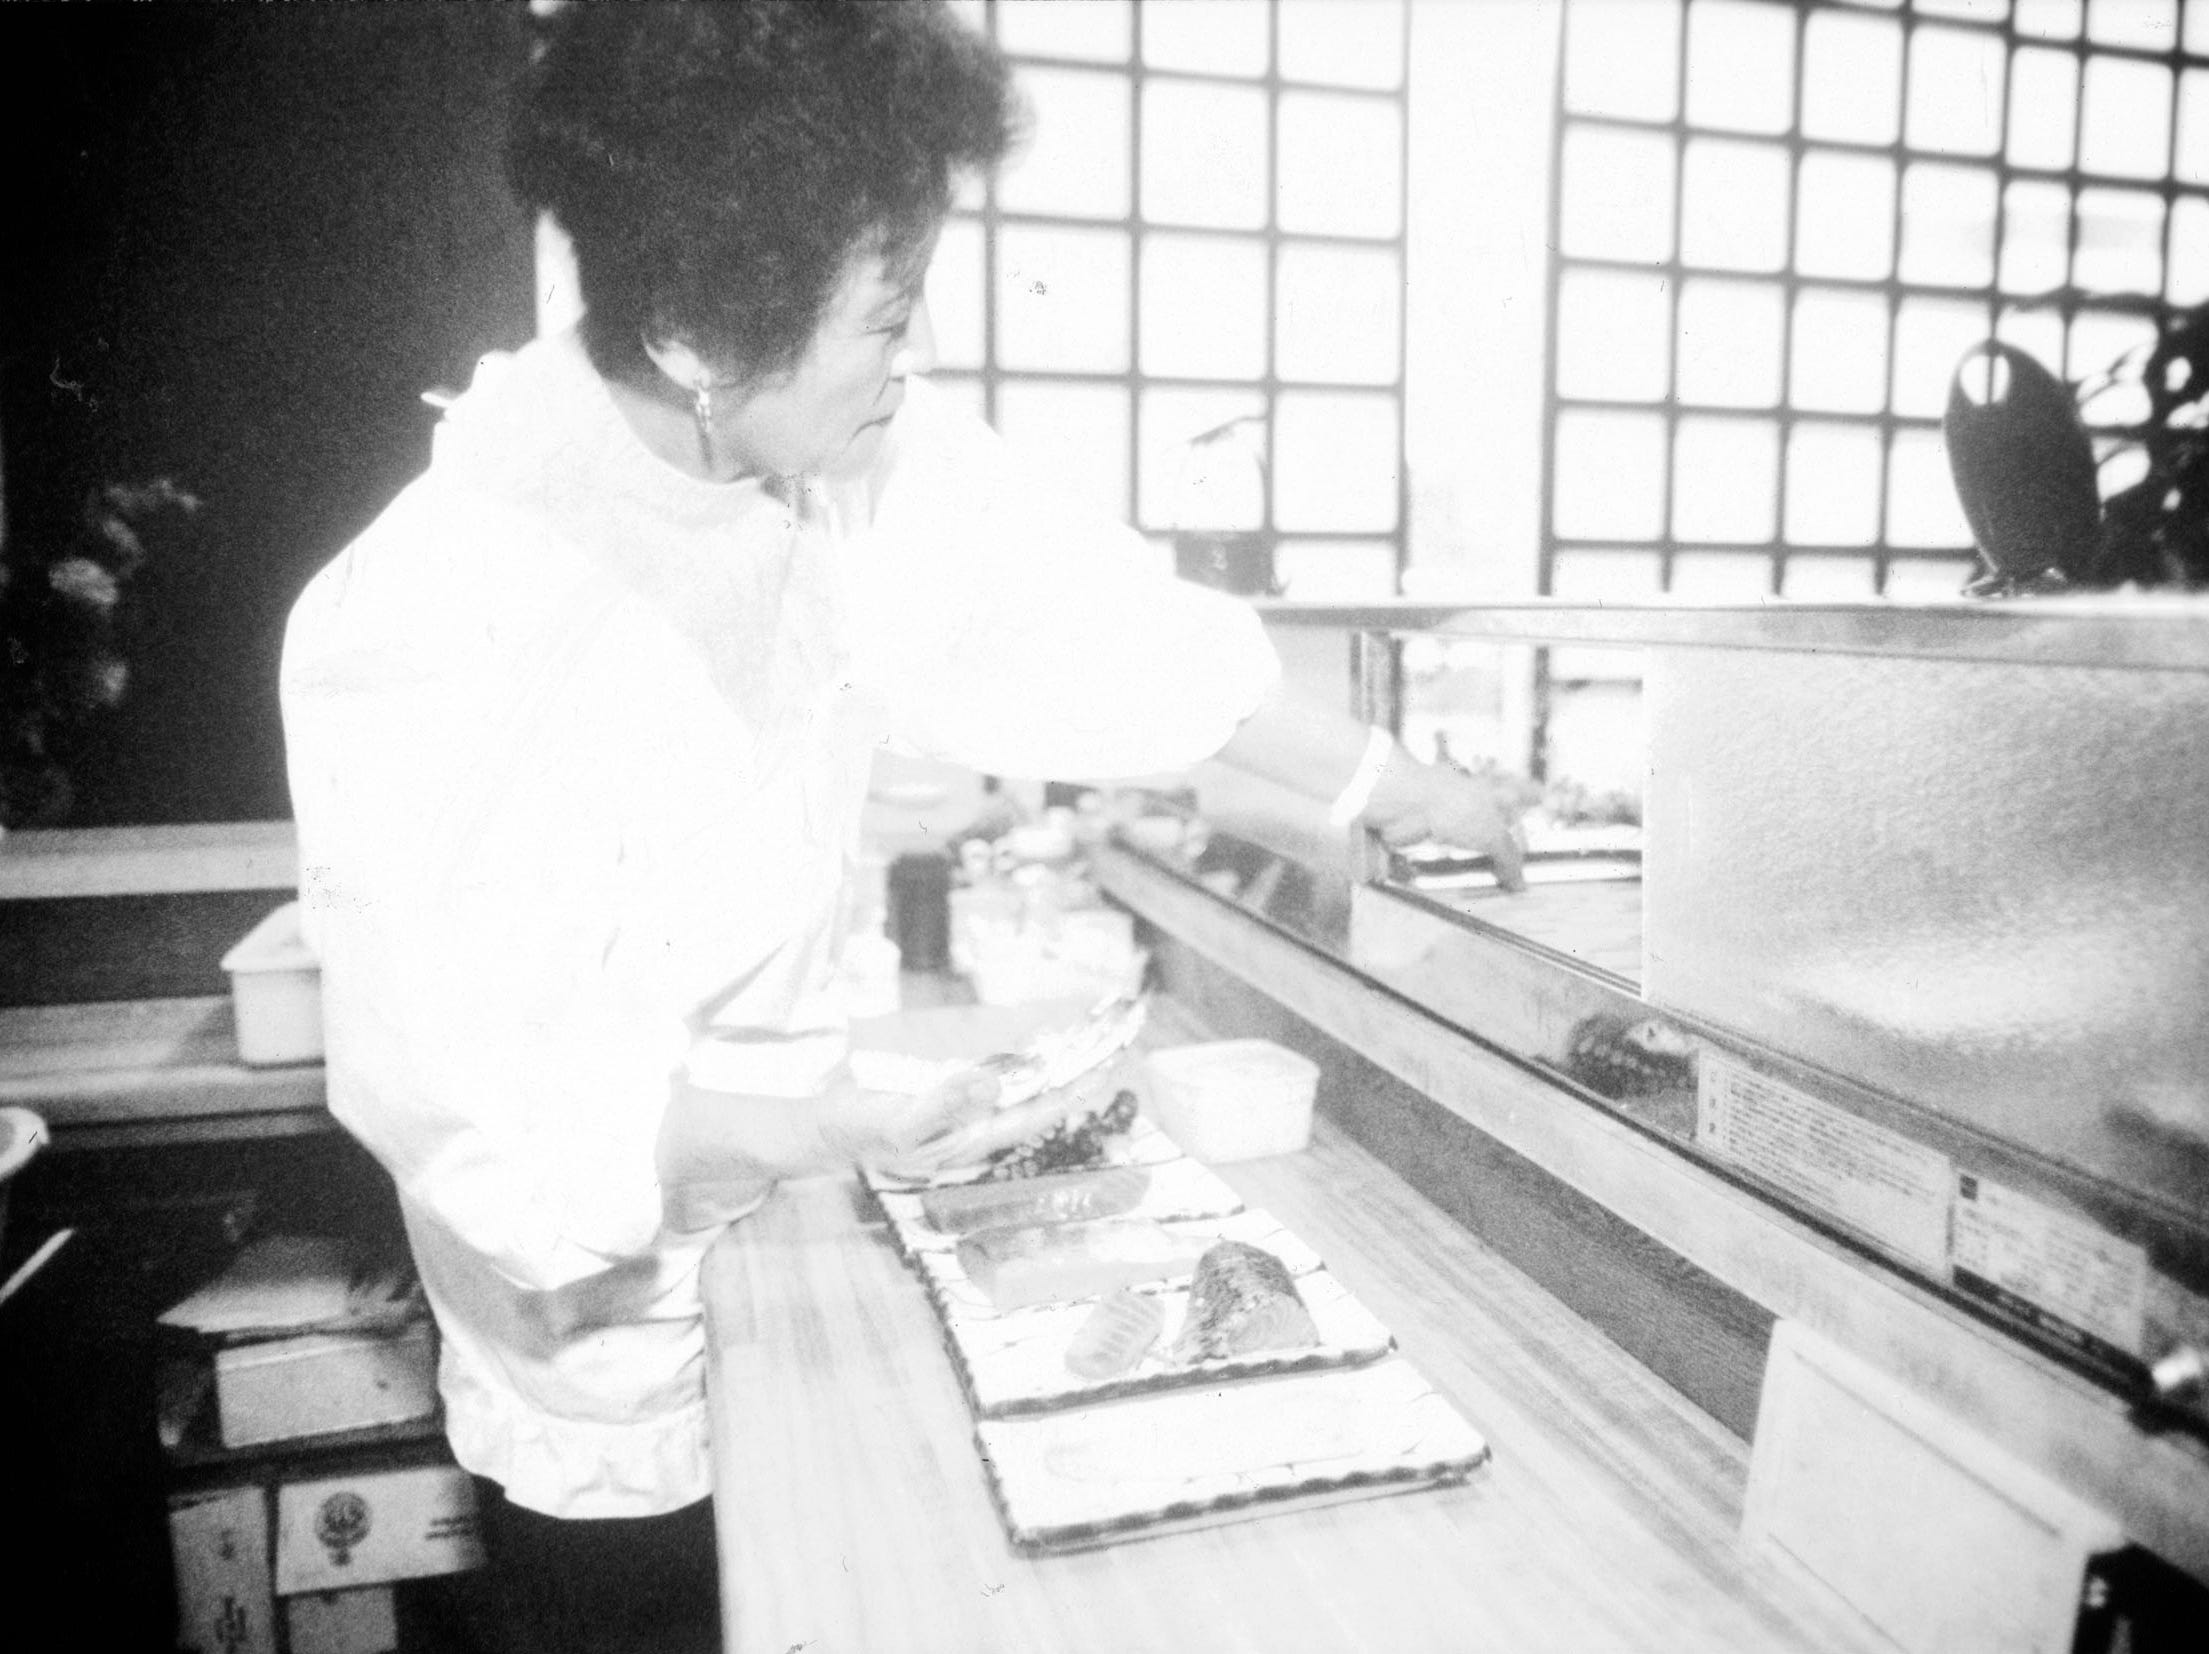 "Akiko Hall, proprietor of Knoxville's only Japanese Sushi Bar, prepares sushi for a busy night at Tomo Japanese Restaurant 112 South Central St. in January 1991. Hall, who has owned the restaurant for 4 years, says the typical sushi eater is a person ""with an open mind."" Hall also indicated that most of her customers are no native East Tennesseans, but of those who have moved here from other metropolitan area."